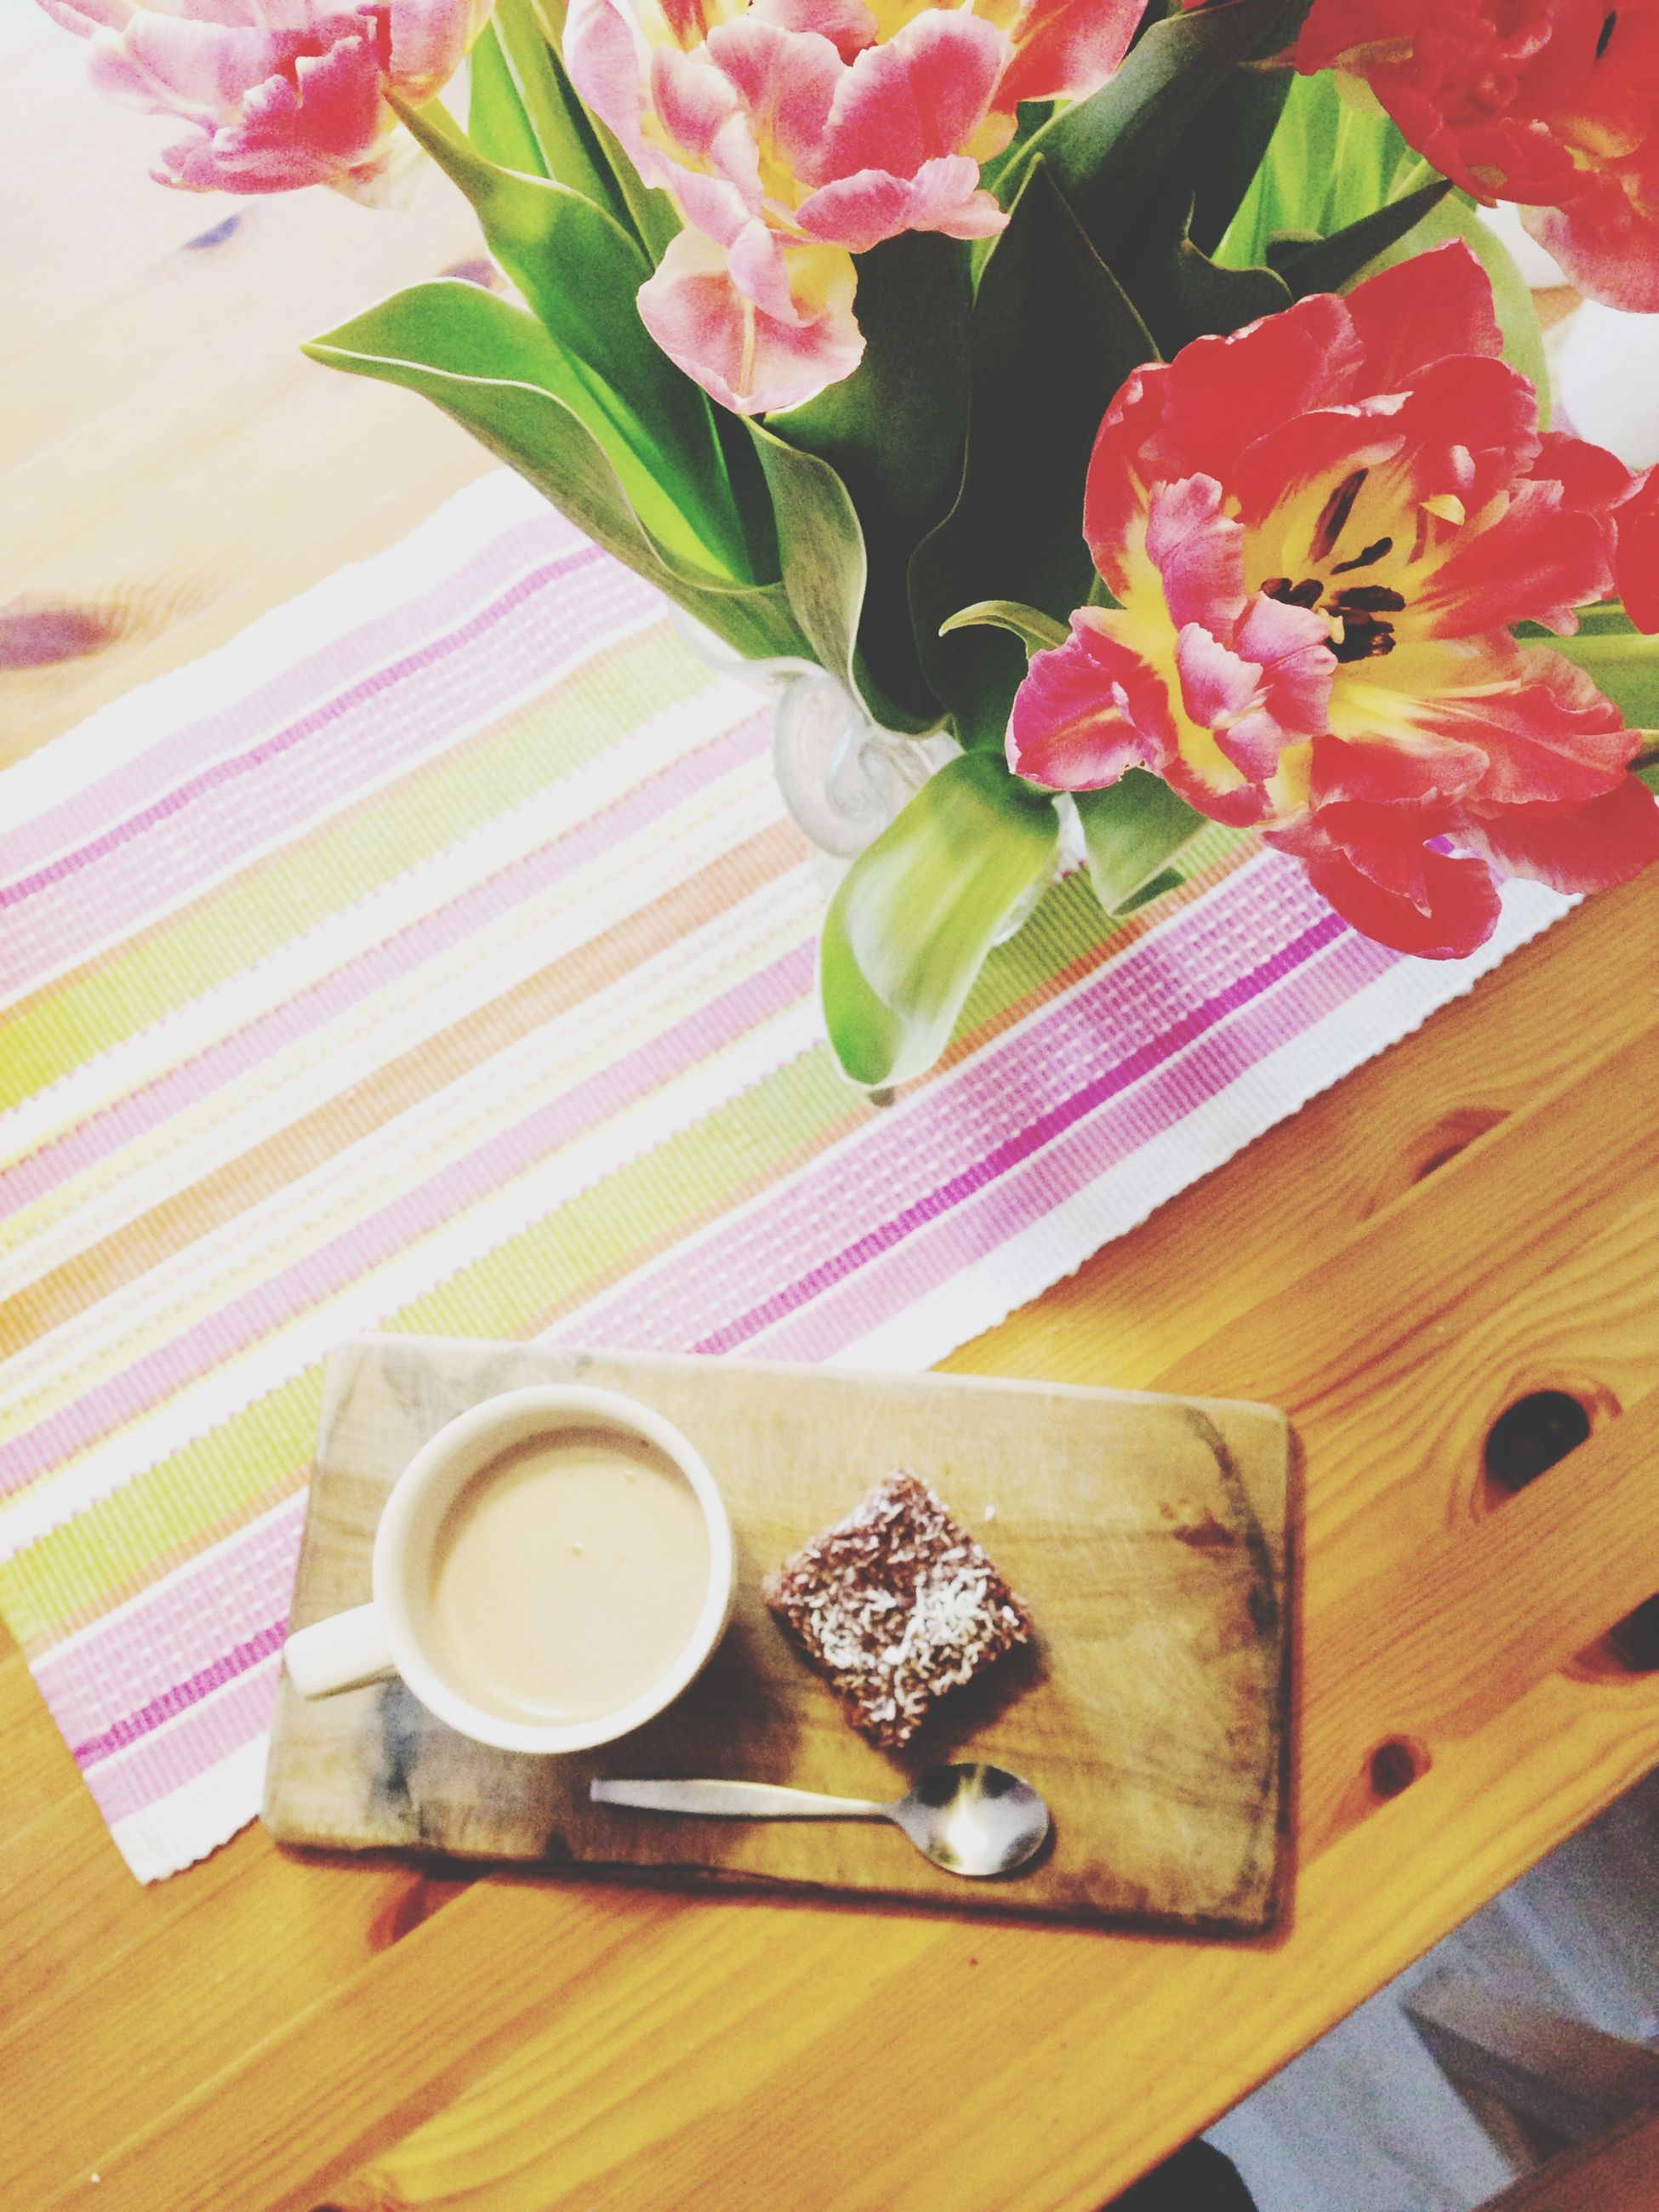 table, indoors, freshness, food and drink, still life, high angle view, drink, wood - material, flower, refreshment, coffee cup, vase, spoon, food, wooden, plate, directly above, coffee - drink, cup, saucer